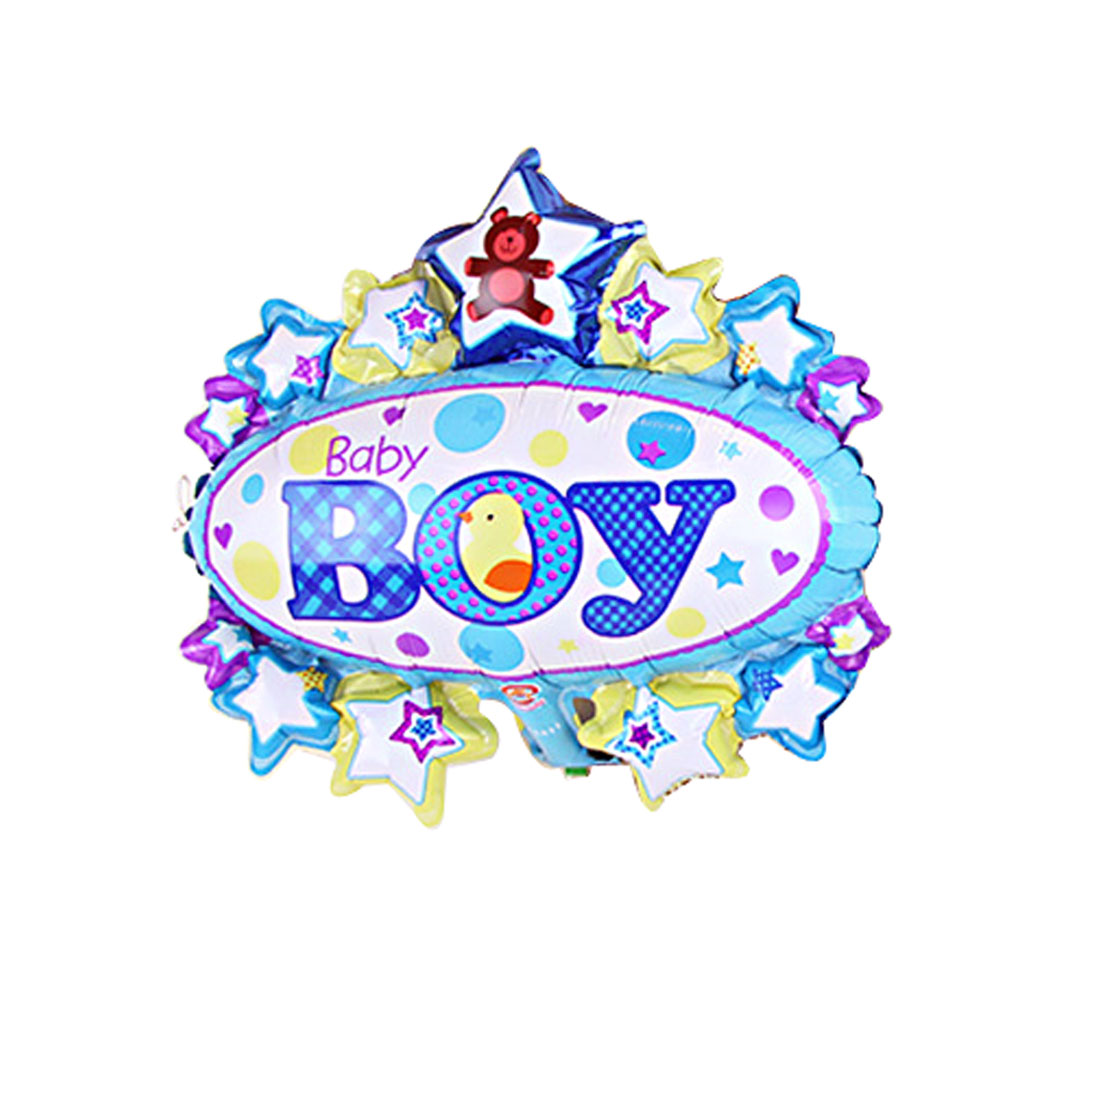 Unique Bargains Home Foil Boy English Letter Pattern Inflation Balloon Birthday Party Decor Blue